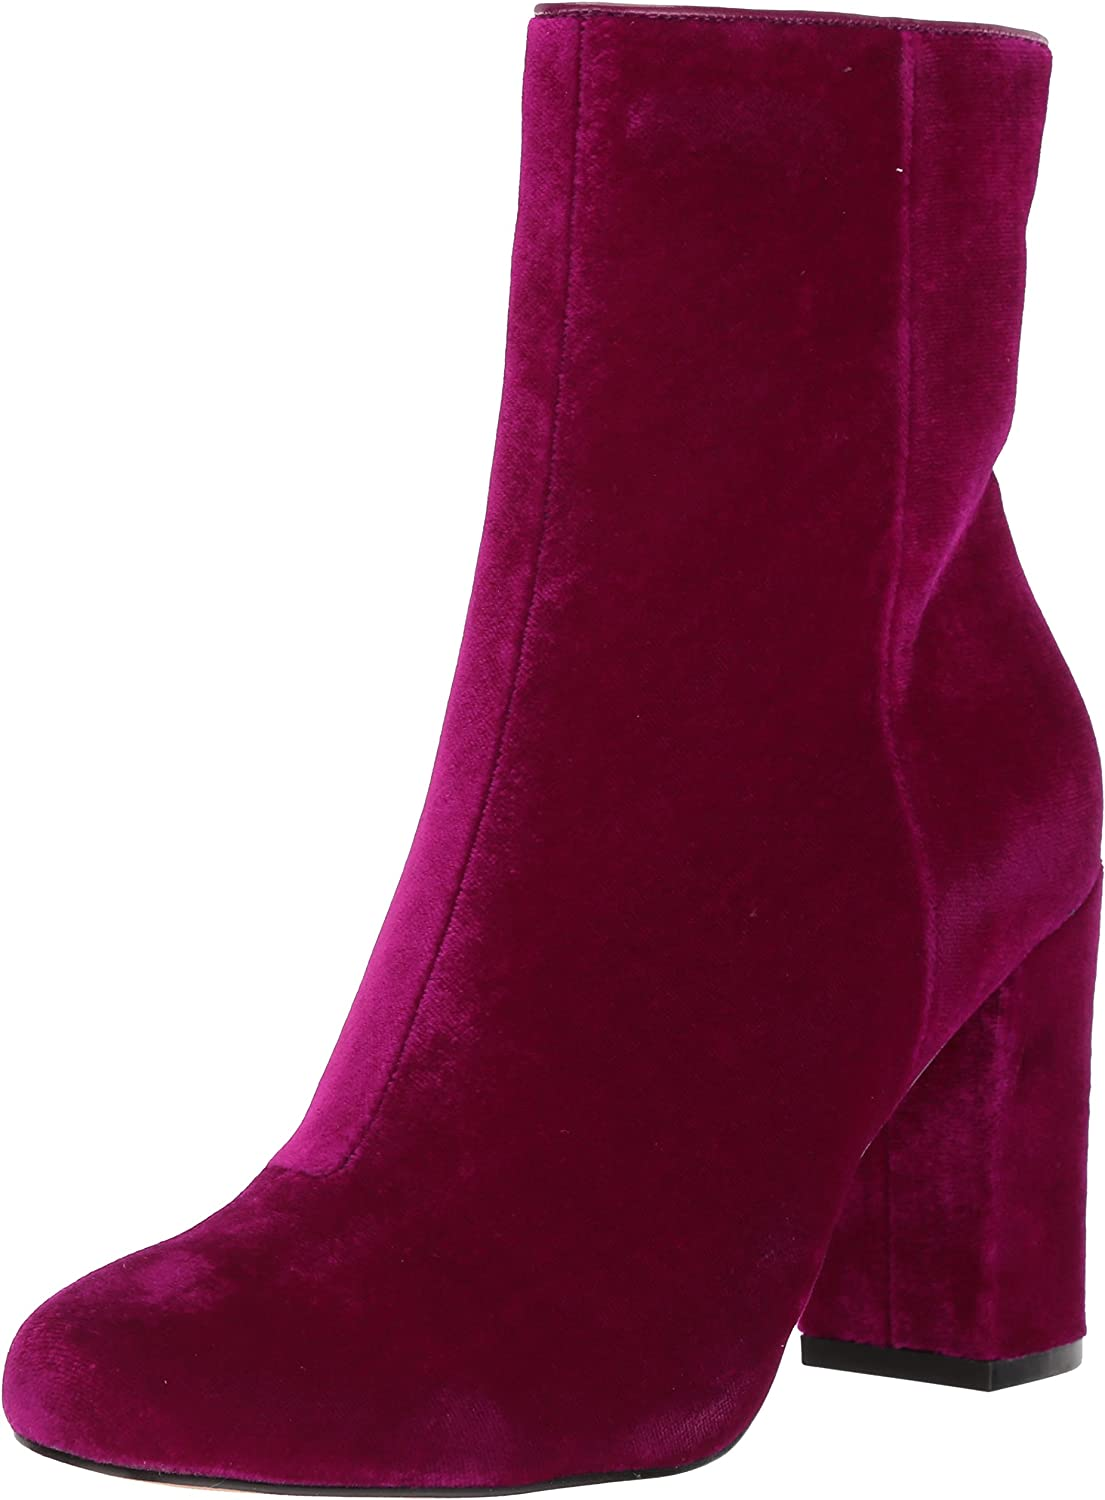 The Fix Women's Sutton Round Toe Ankle Boot